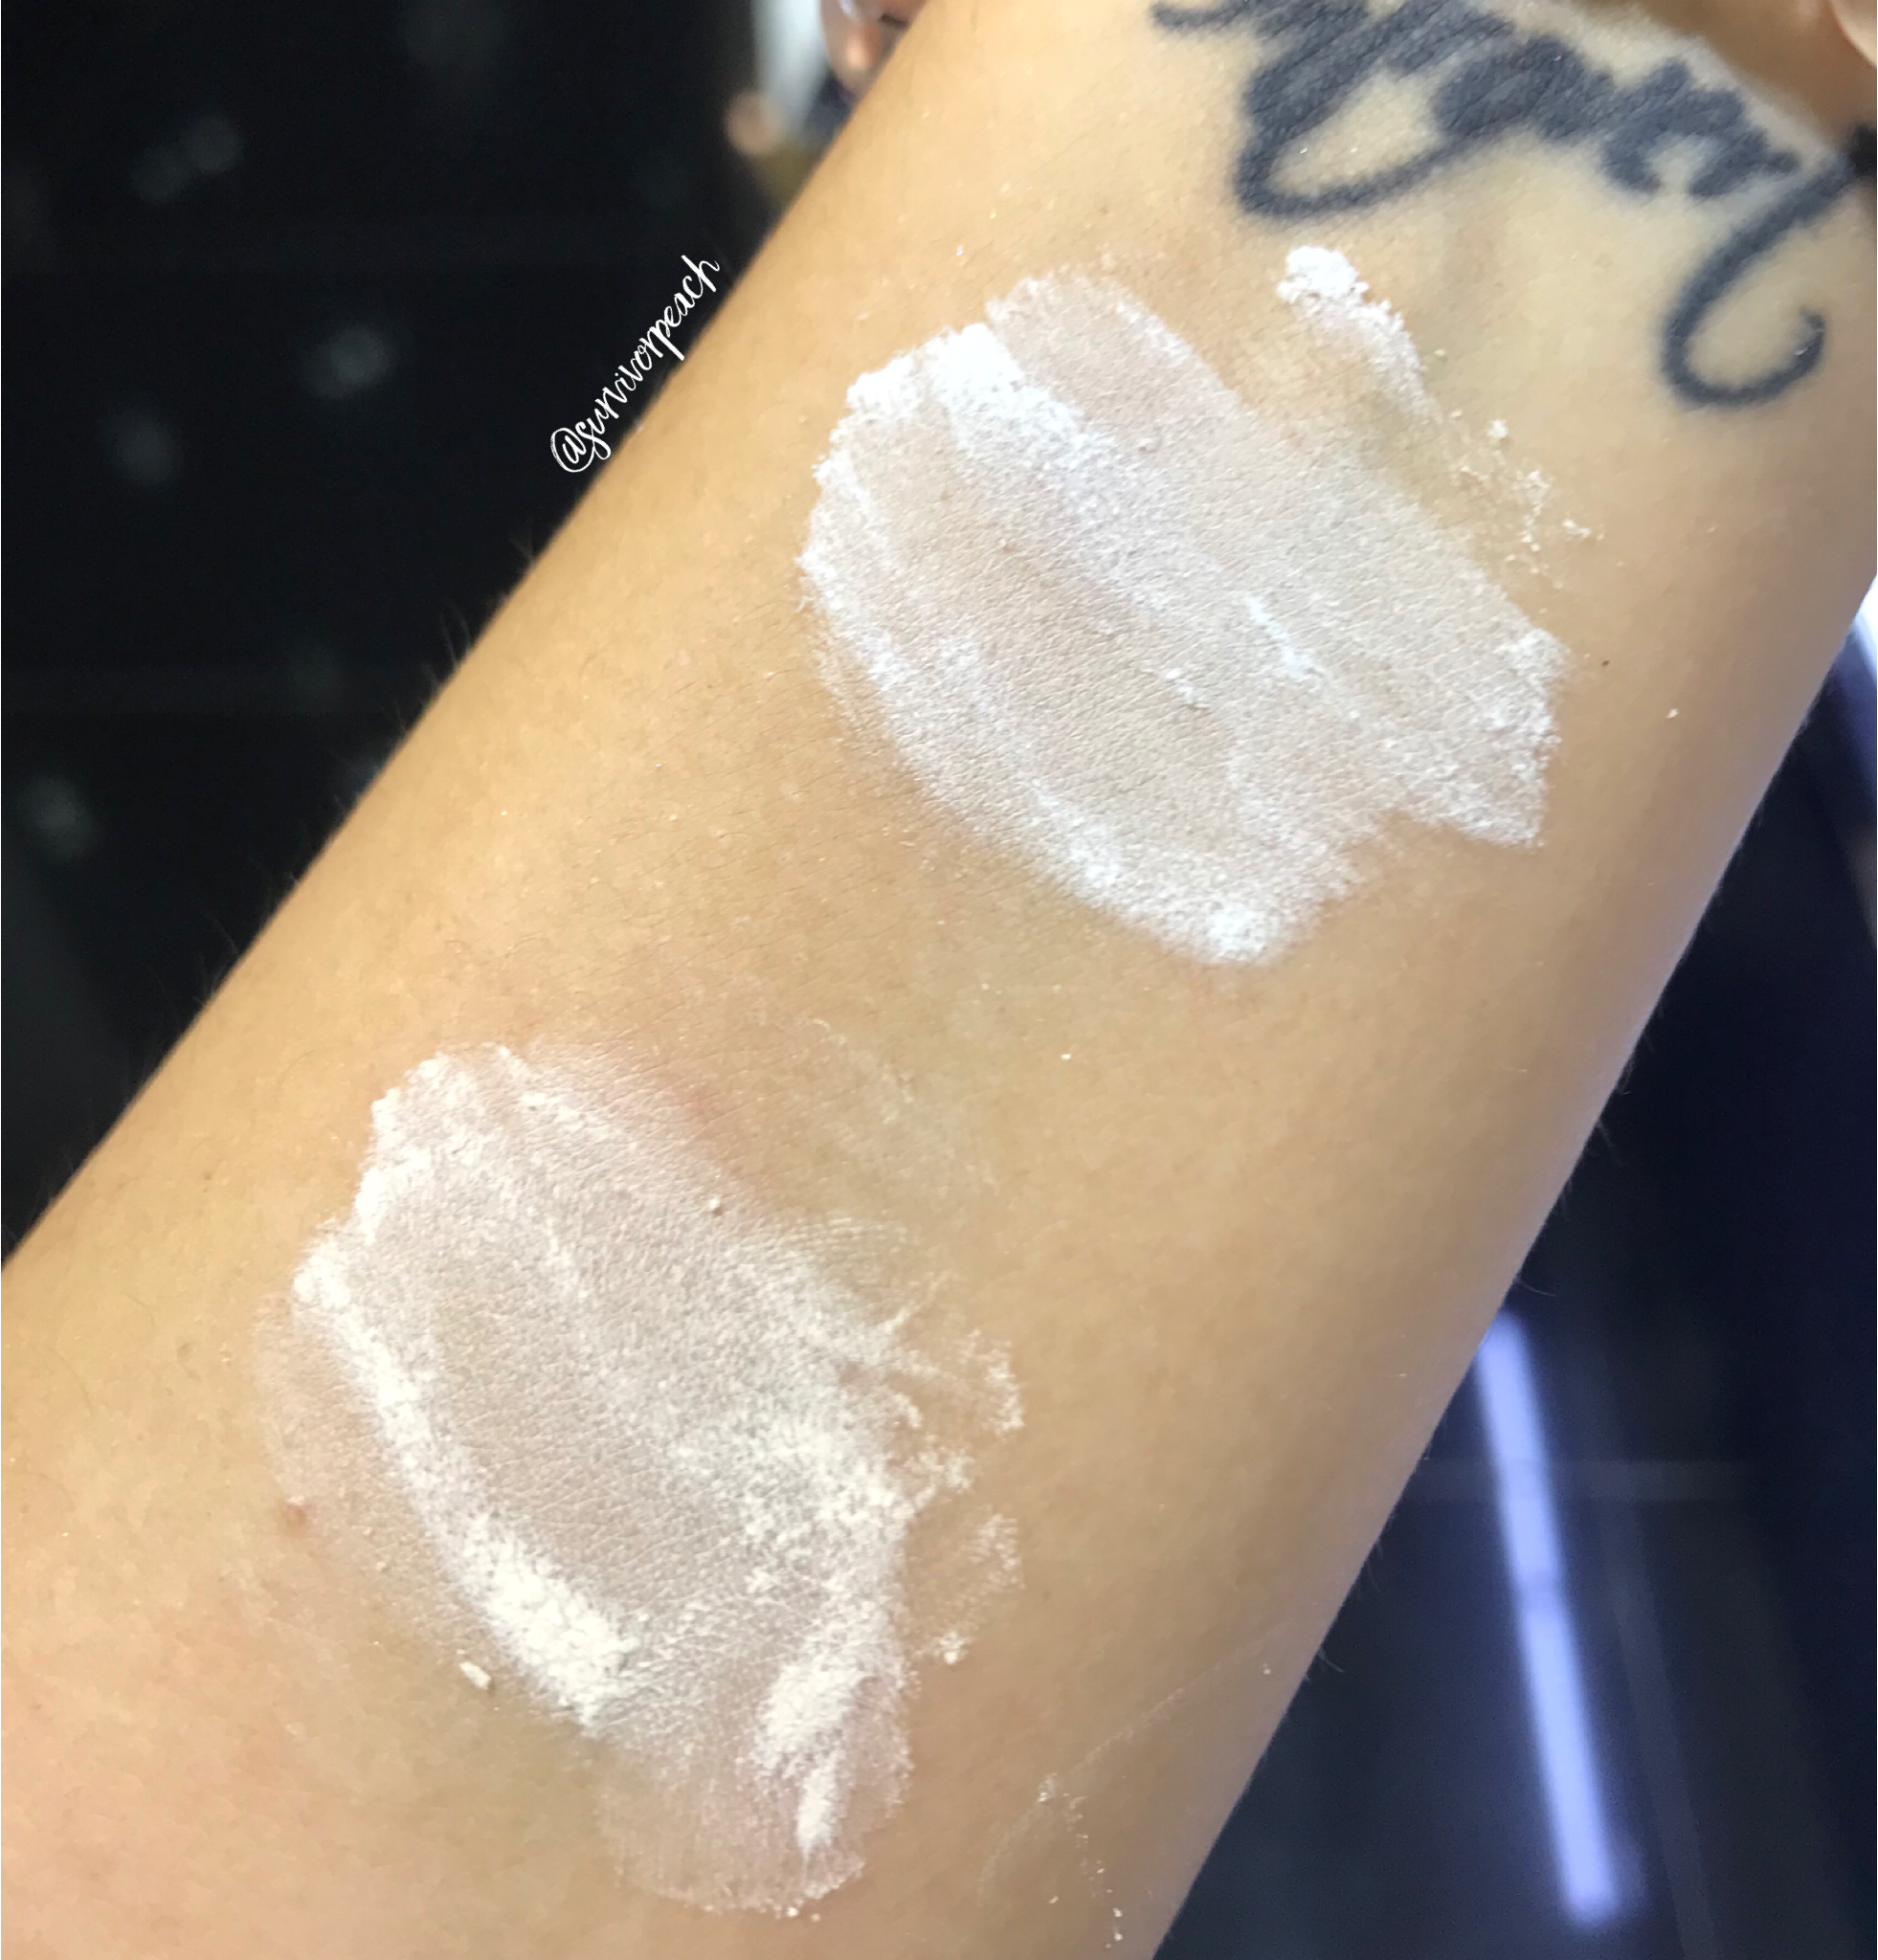 Huda Beauty Easy Bake Powder swatches - Sugar Cookie and Cupcake